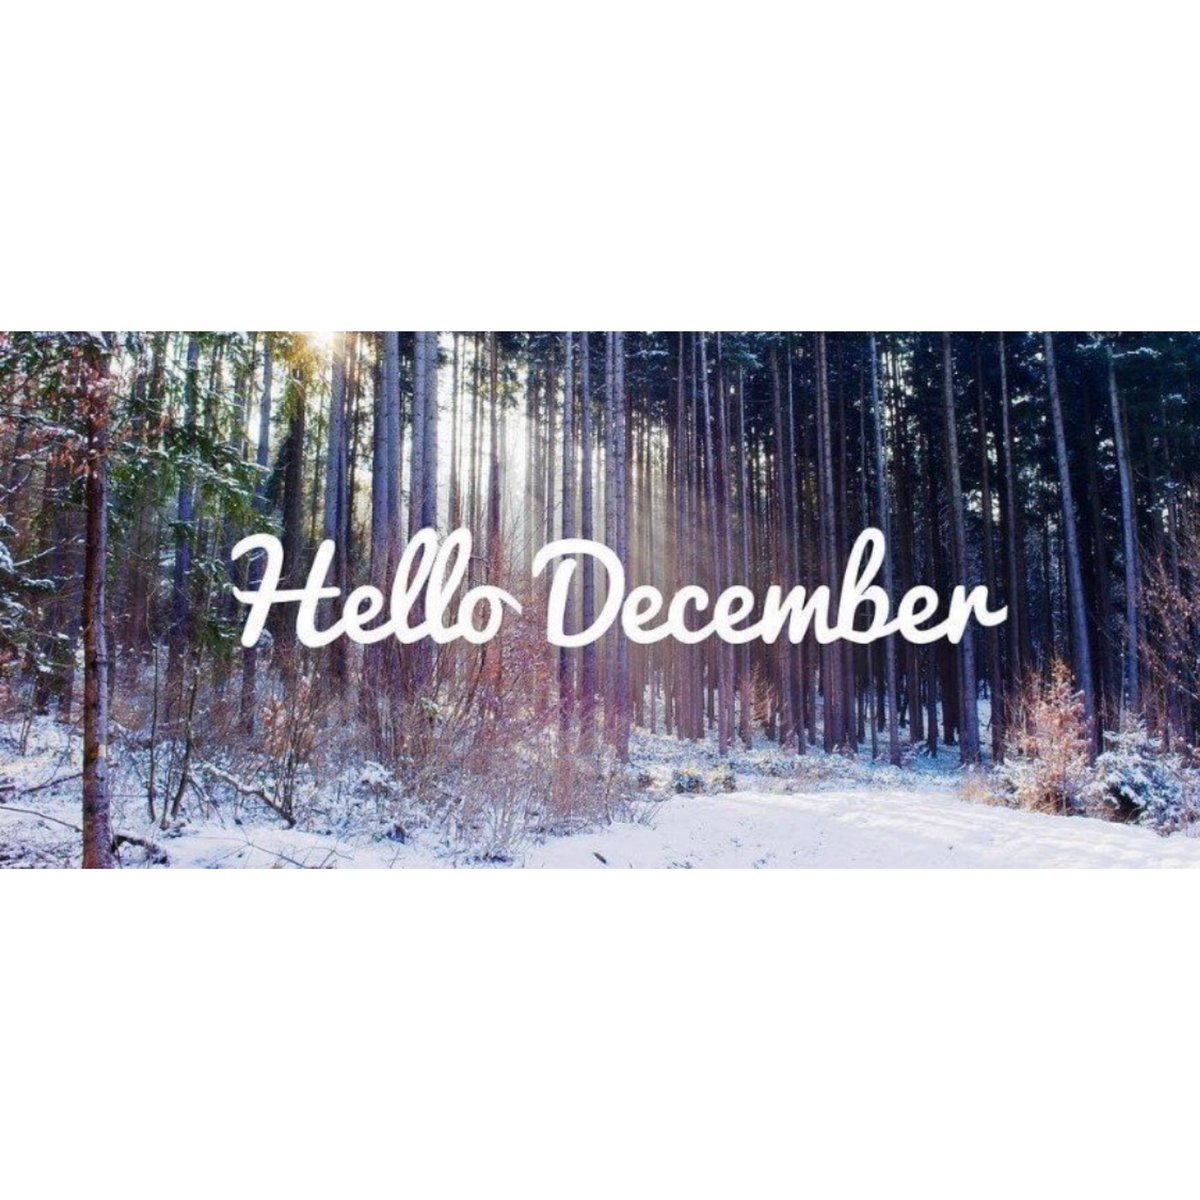 ❄️☃️Hello December may your days be merry and bright! ☃️❄️ #december #xmas #christmas #hoildayspirit #blessings #joy #love #positivevibes